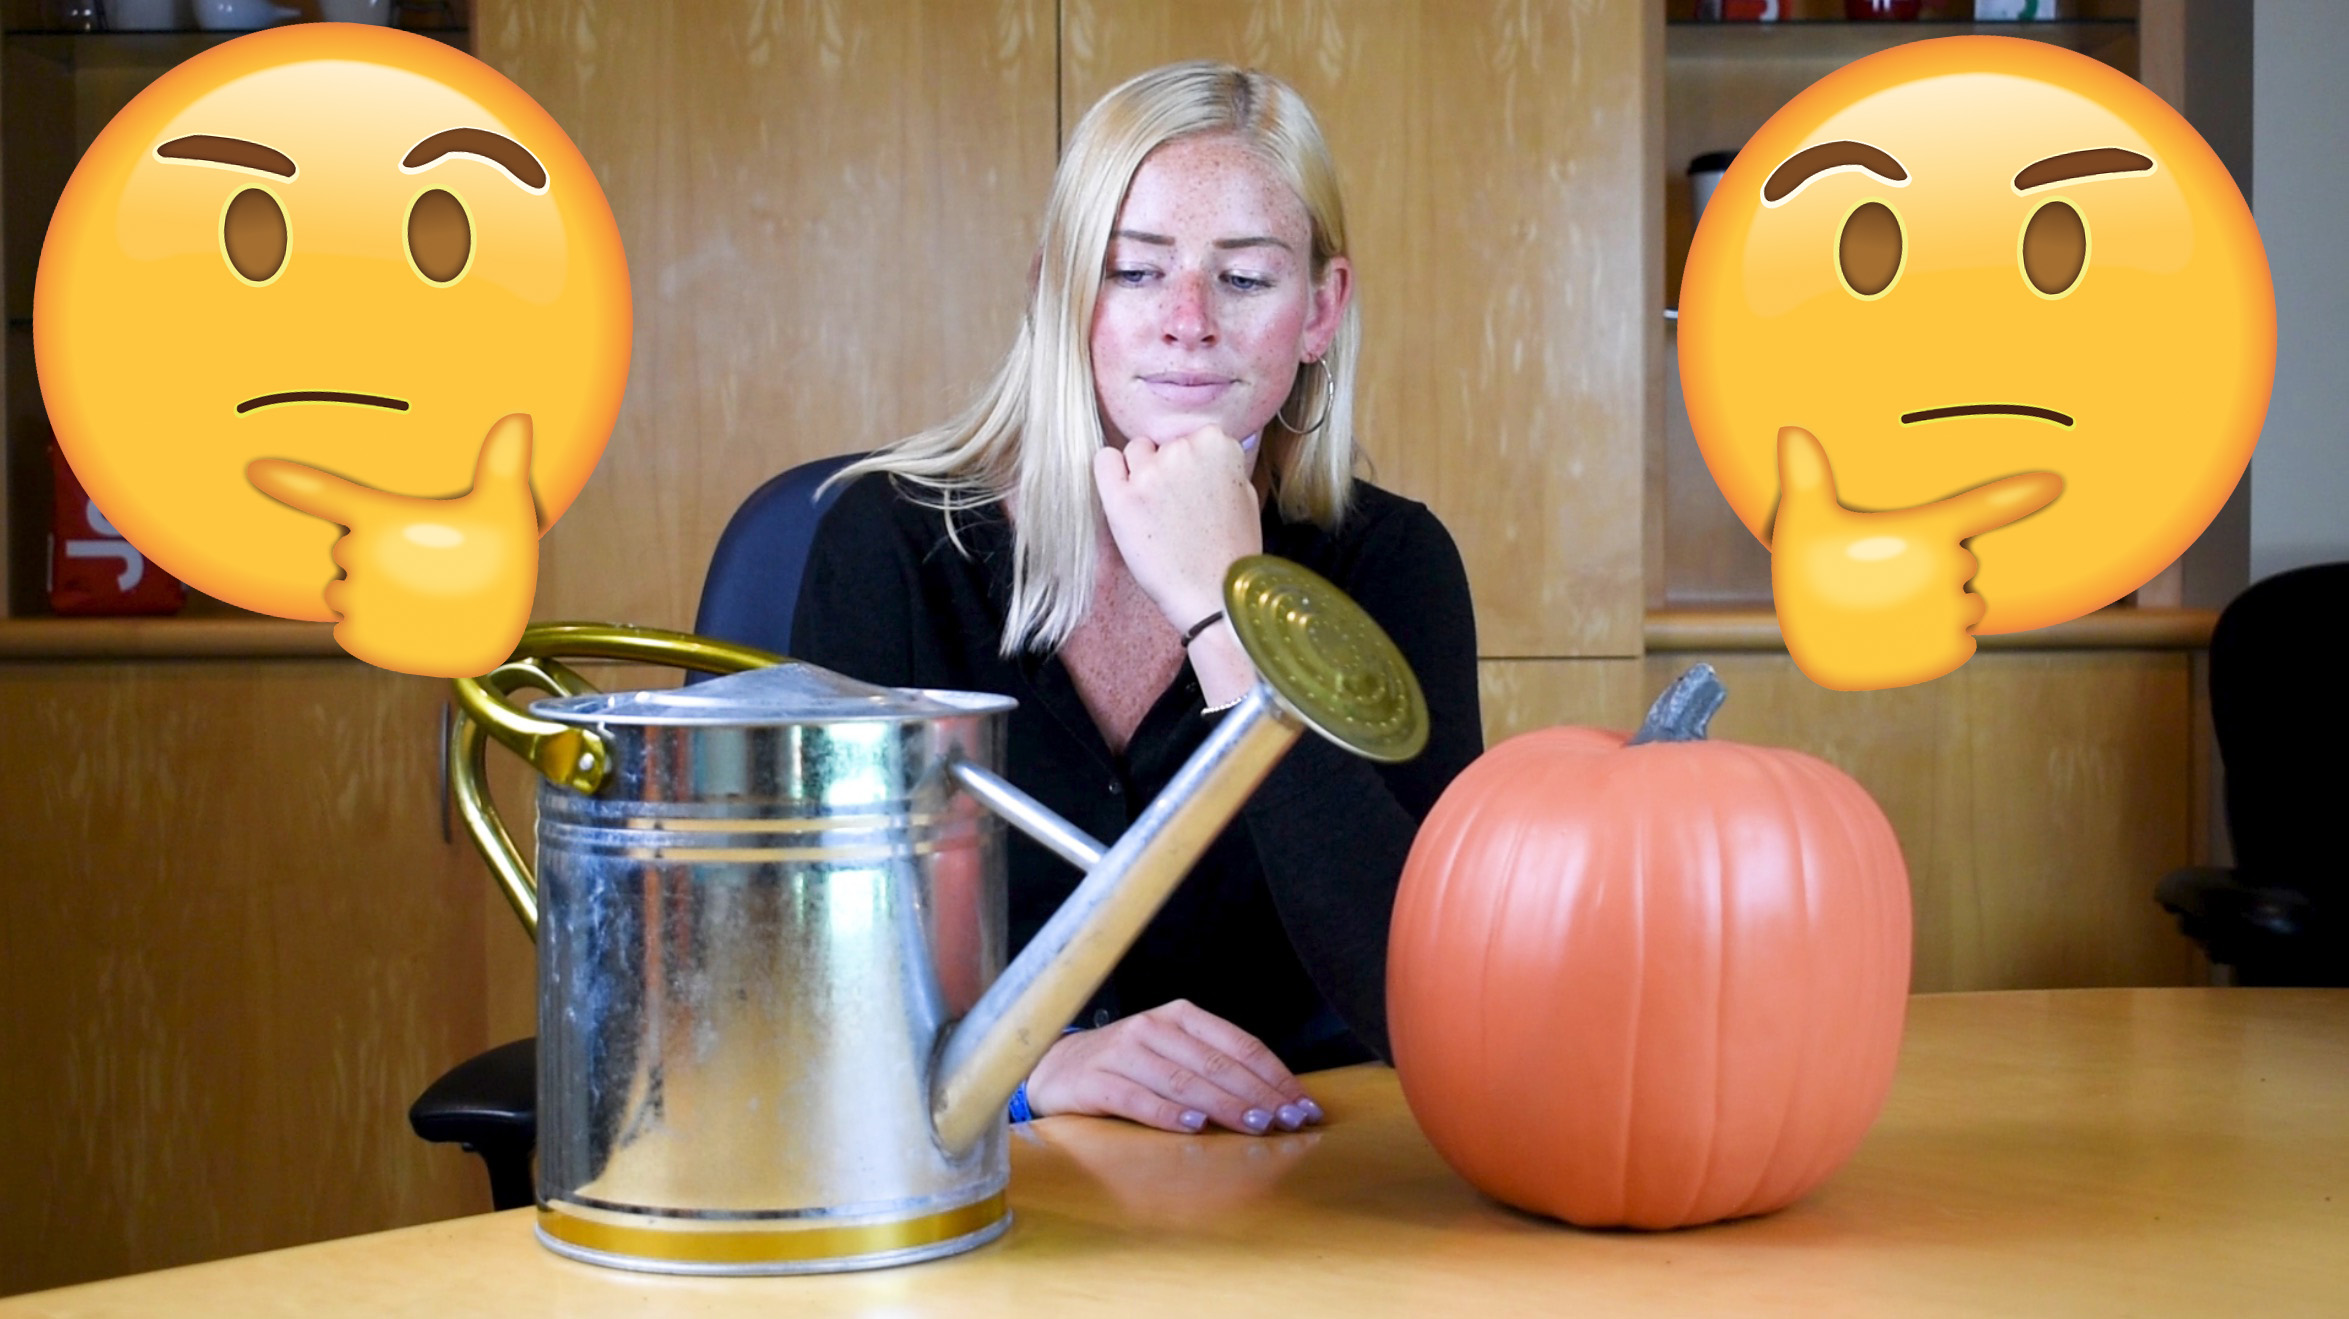 Pumpkin video thumbnail.jpg